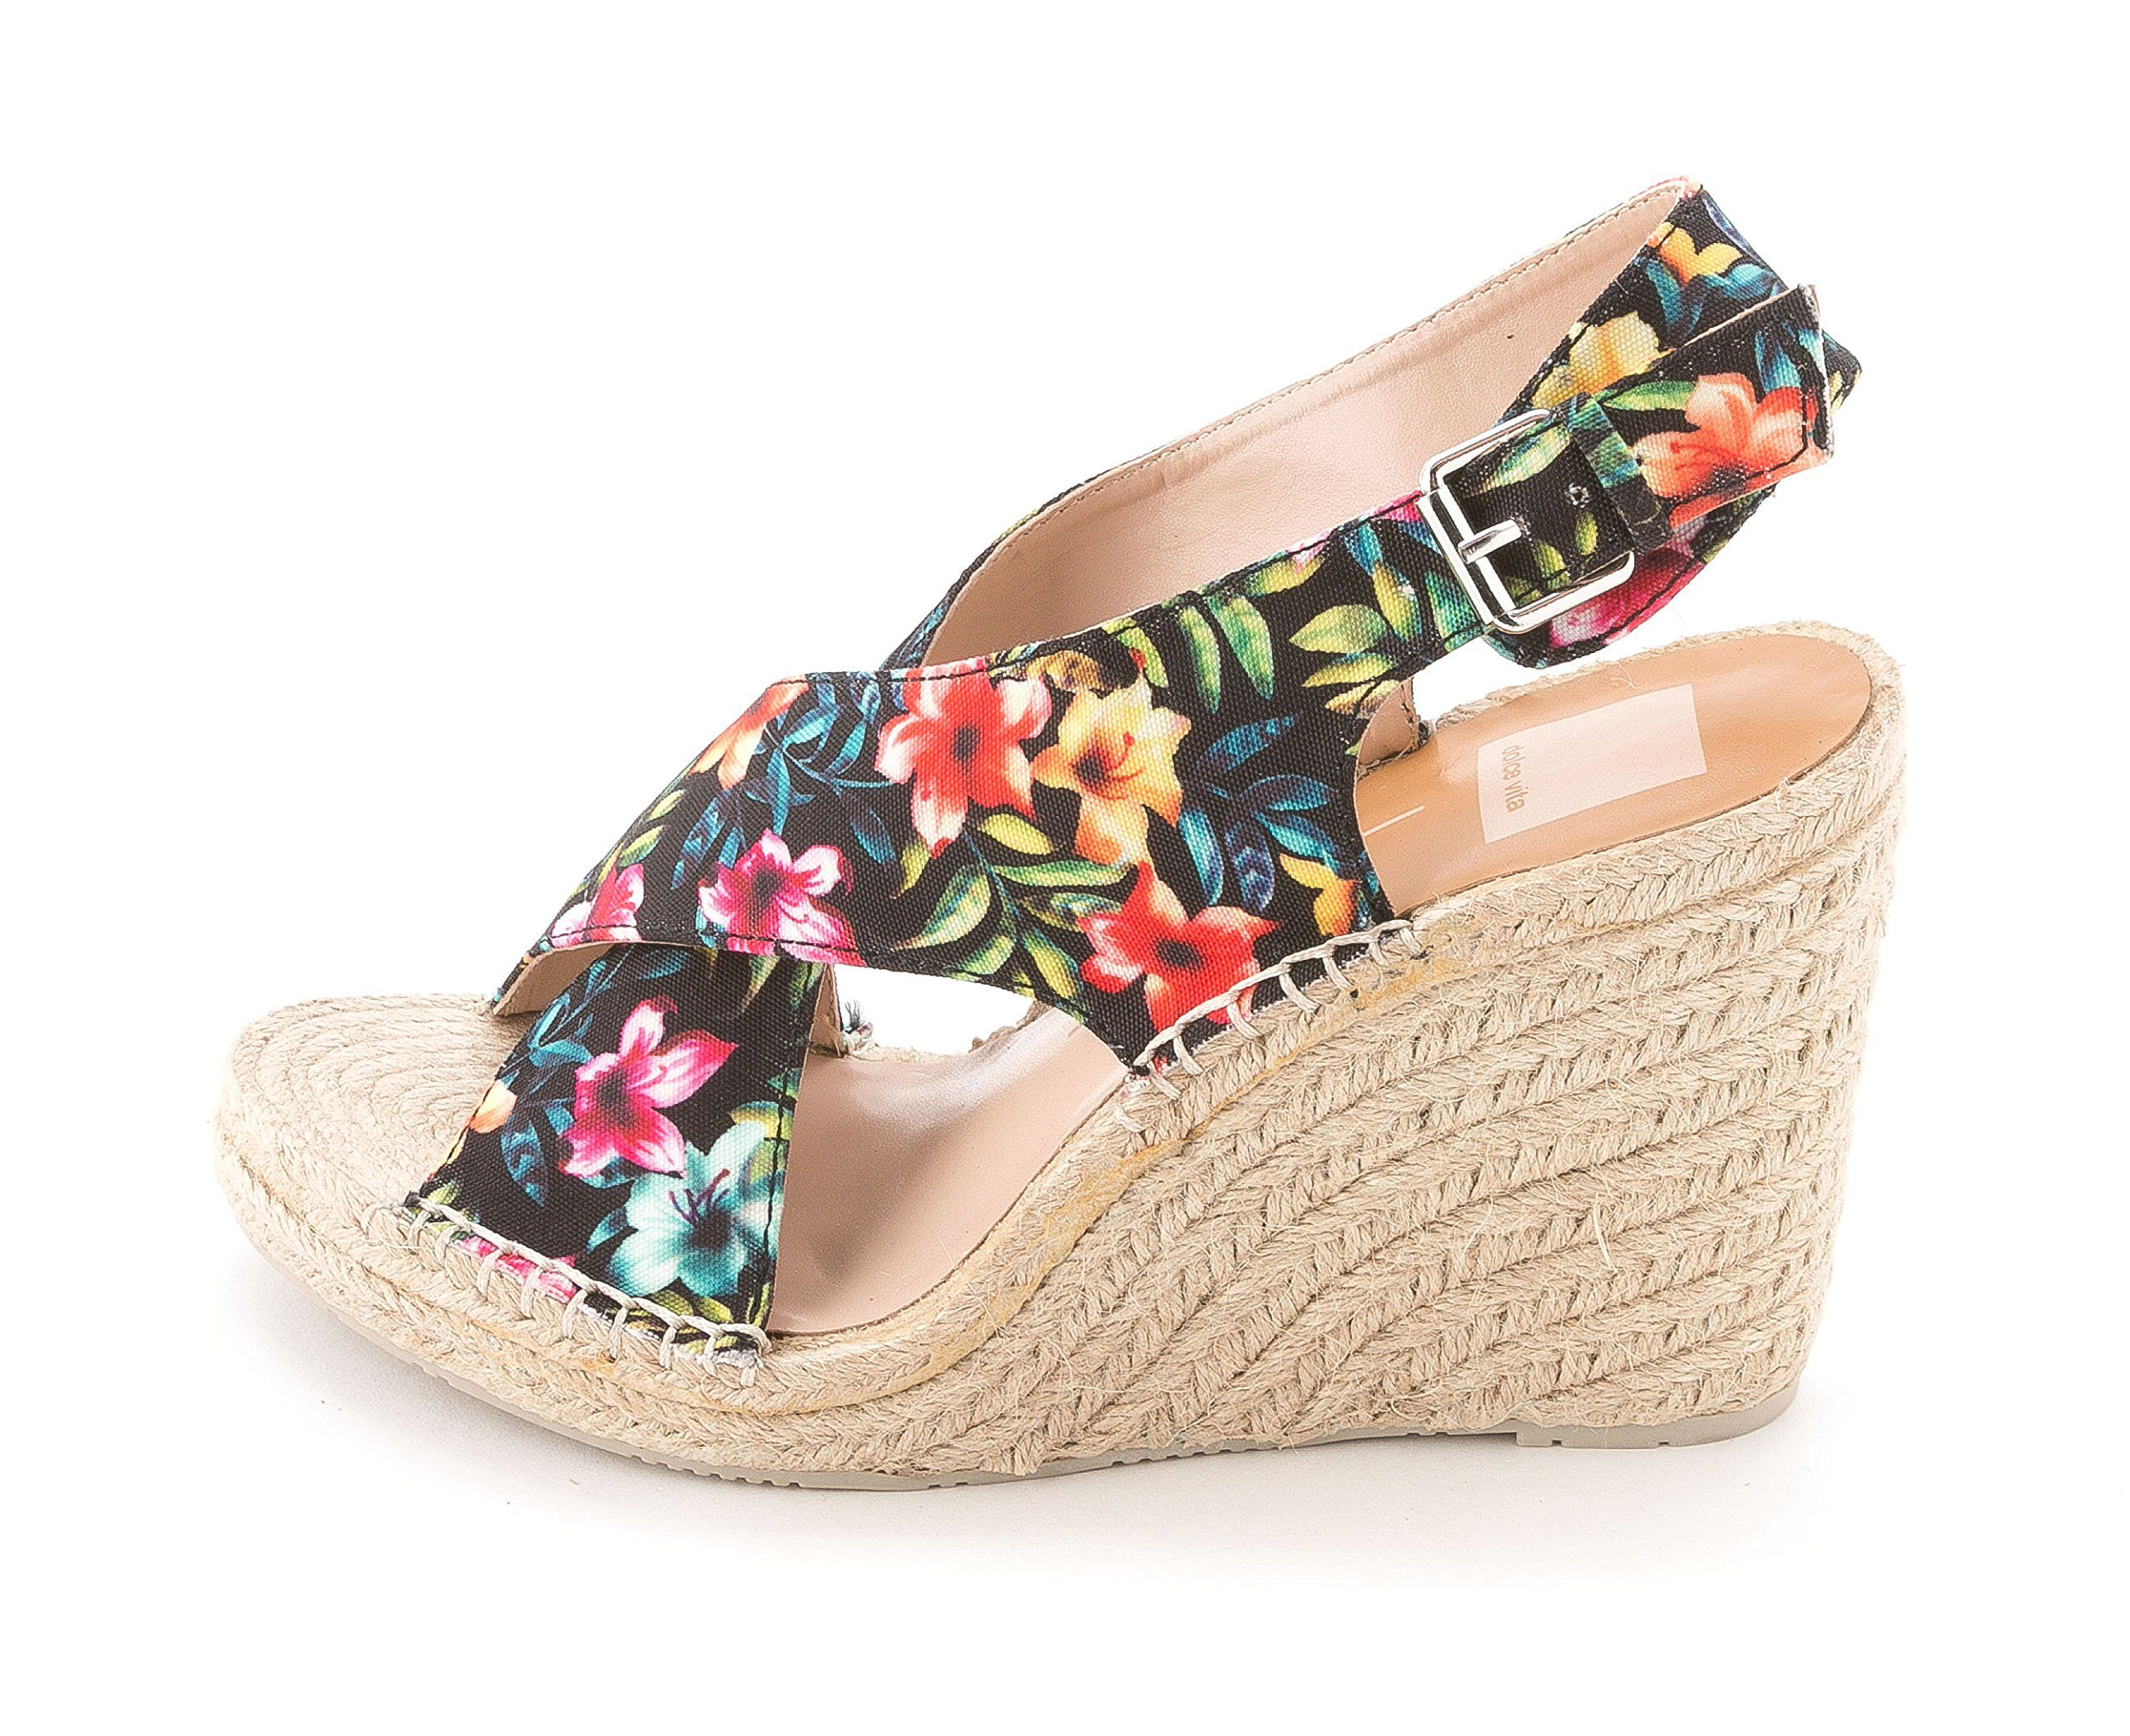 d50cad4dac00 Dolce Vita Sovay Tropical Floral Canvas Wedge Sandal Size 6. Beautiful  floral print on canvas. Buckle fastening. 3 inch heal height.